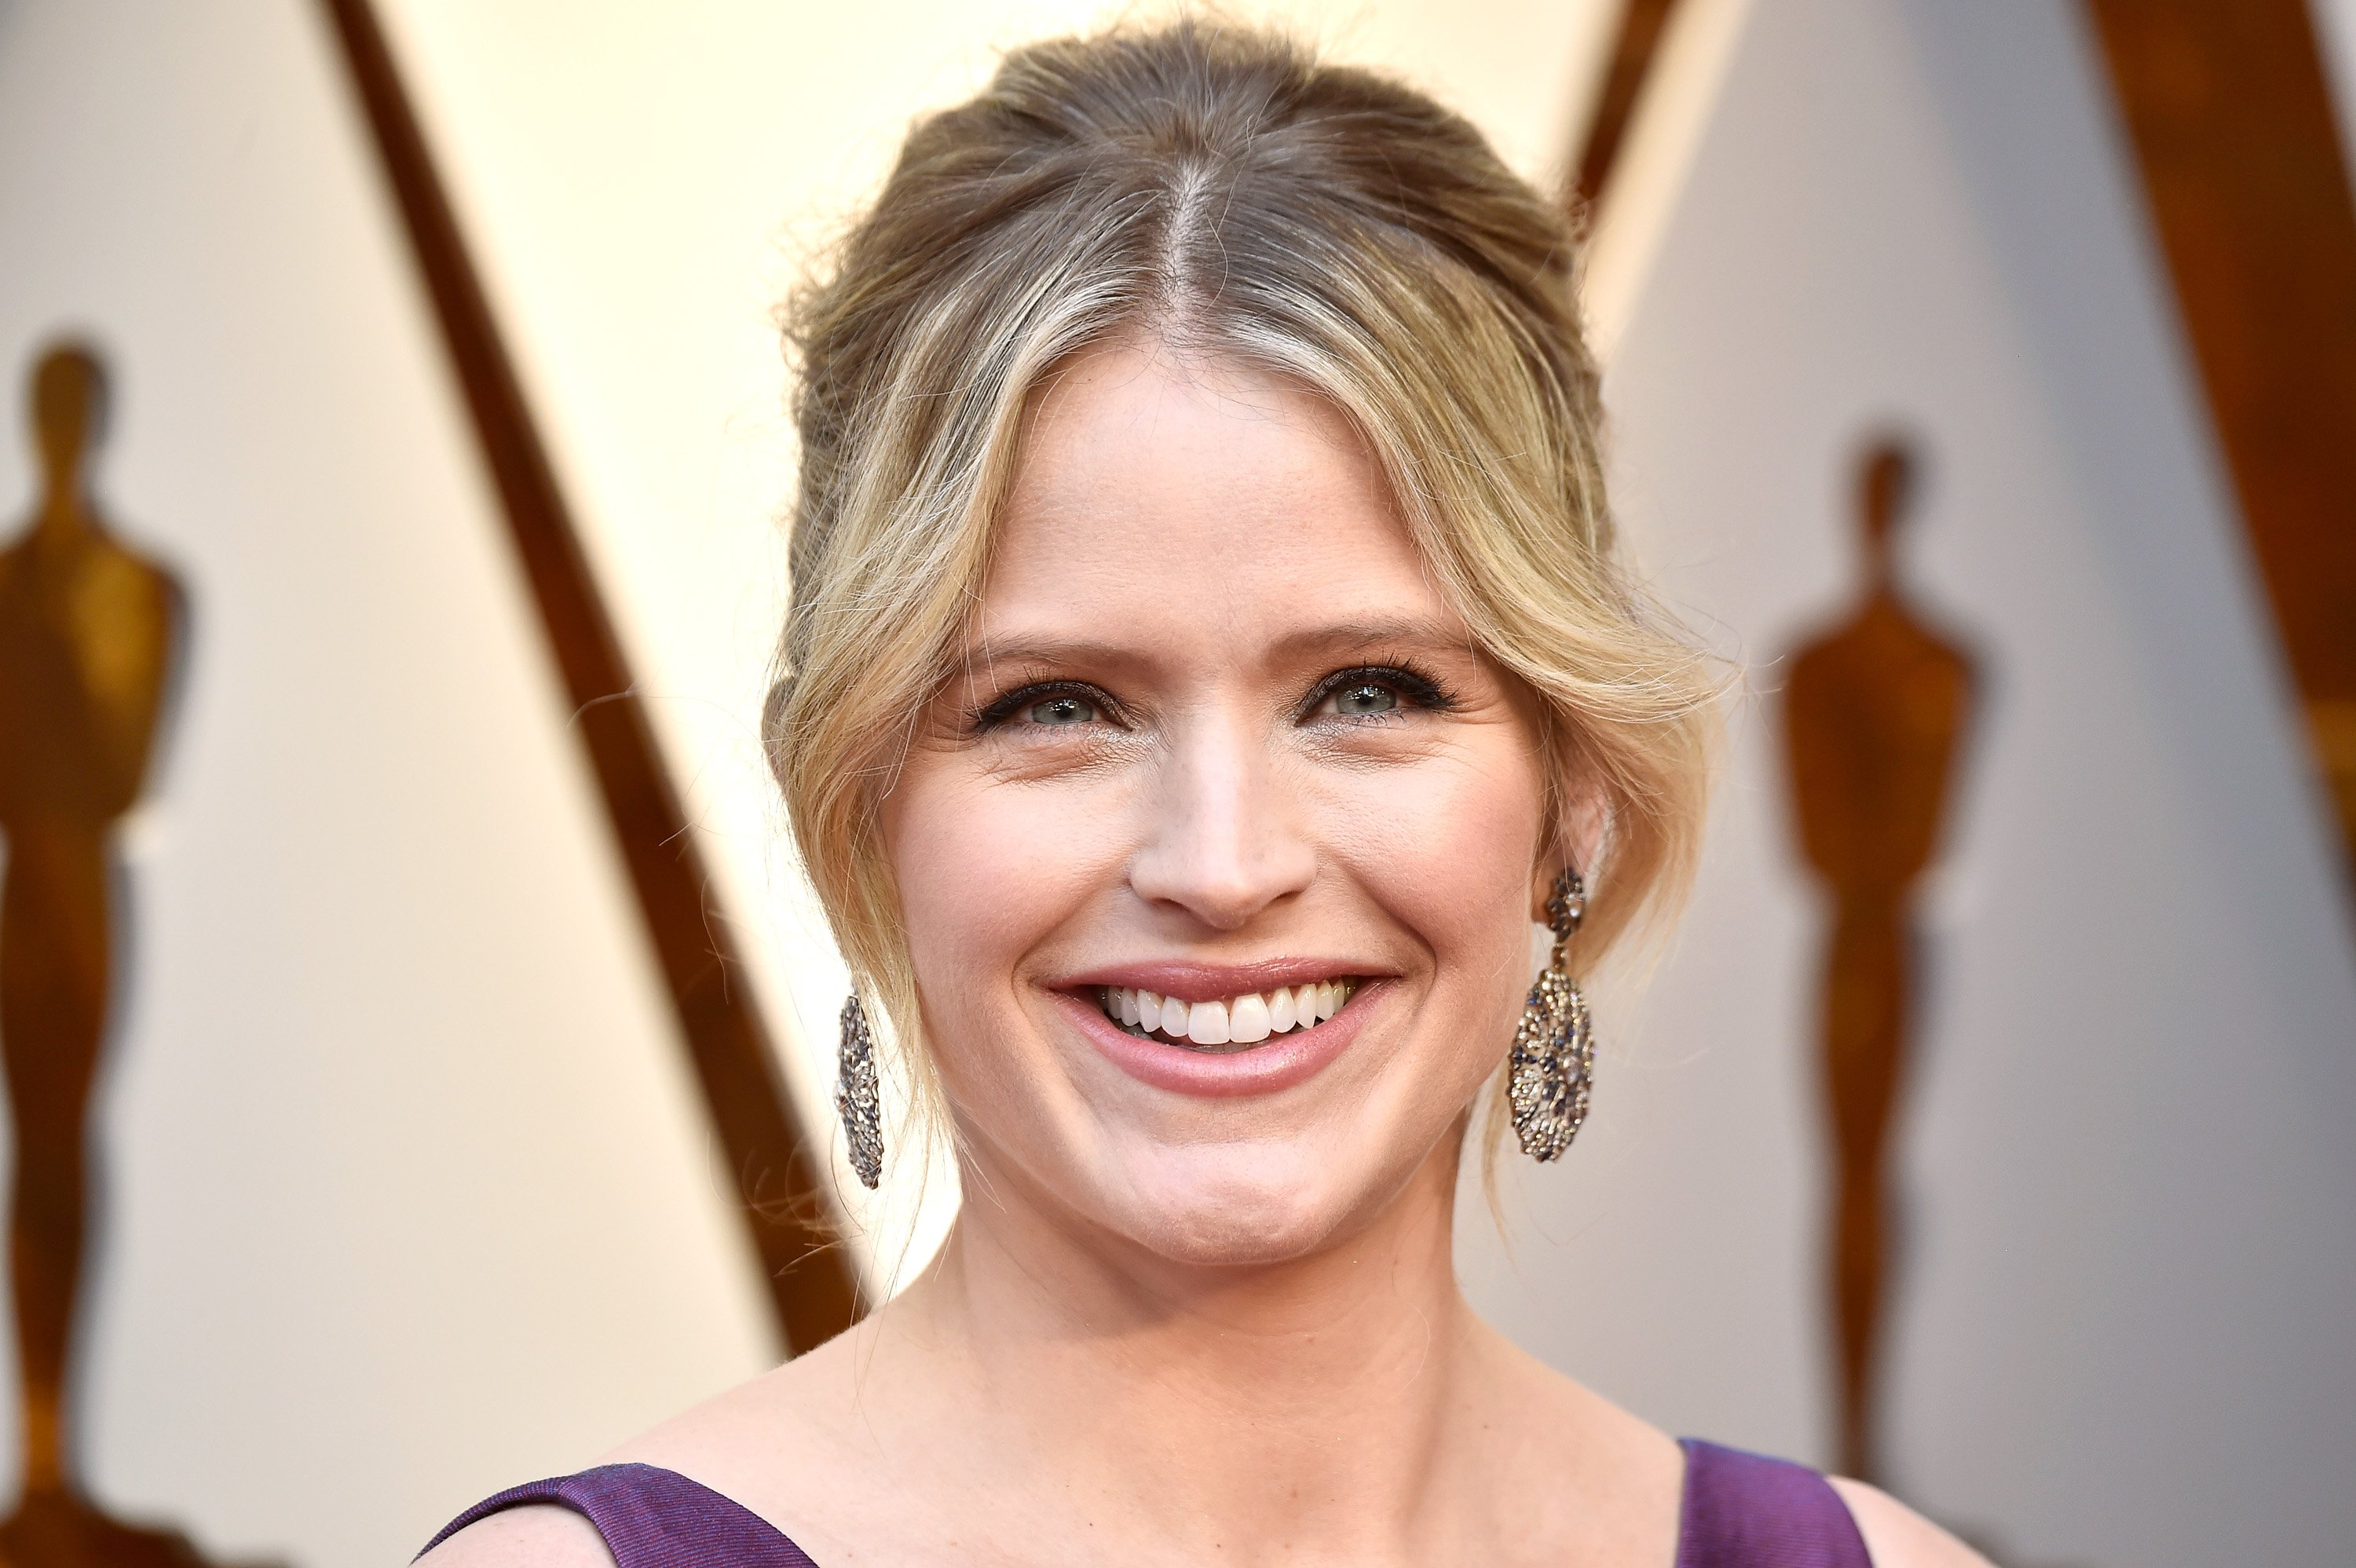 Sara Haines attends the 90th Annual Academy Awards in Hollywood, California on March 4, 2008. | Photo: Getty Images